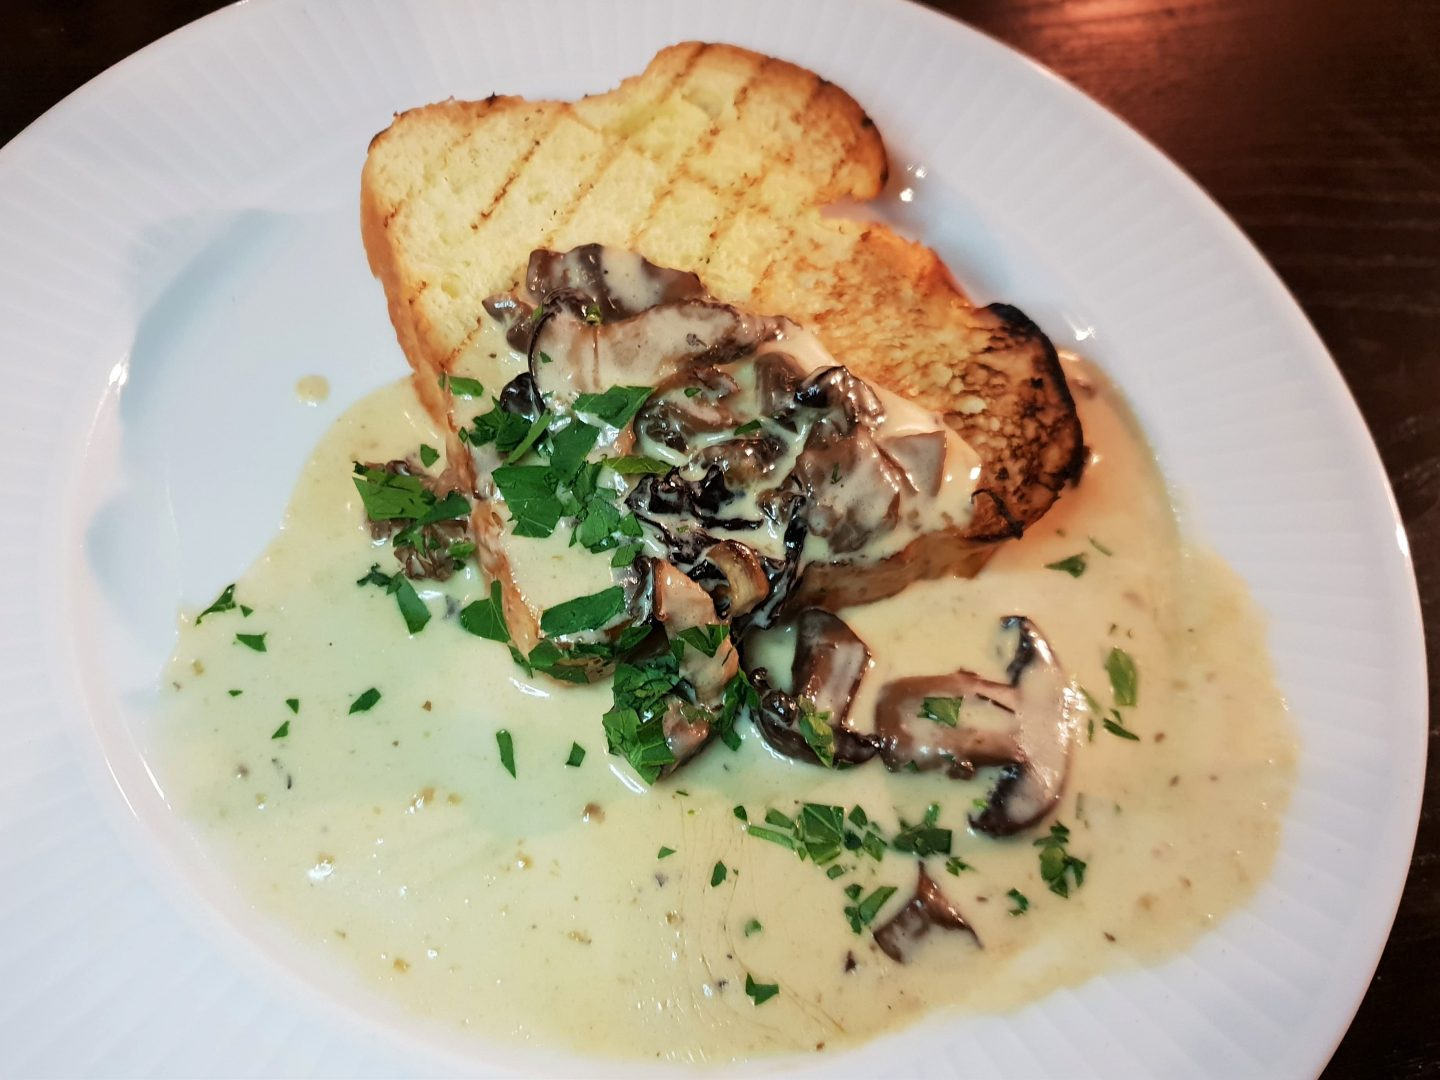 Mushroom Brioche from the vegetarian menu at French Onion Soup at Côte Brasserie, Maidstone